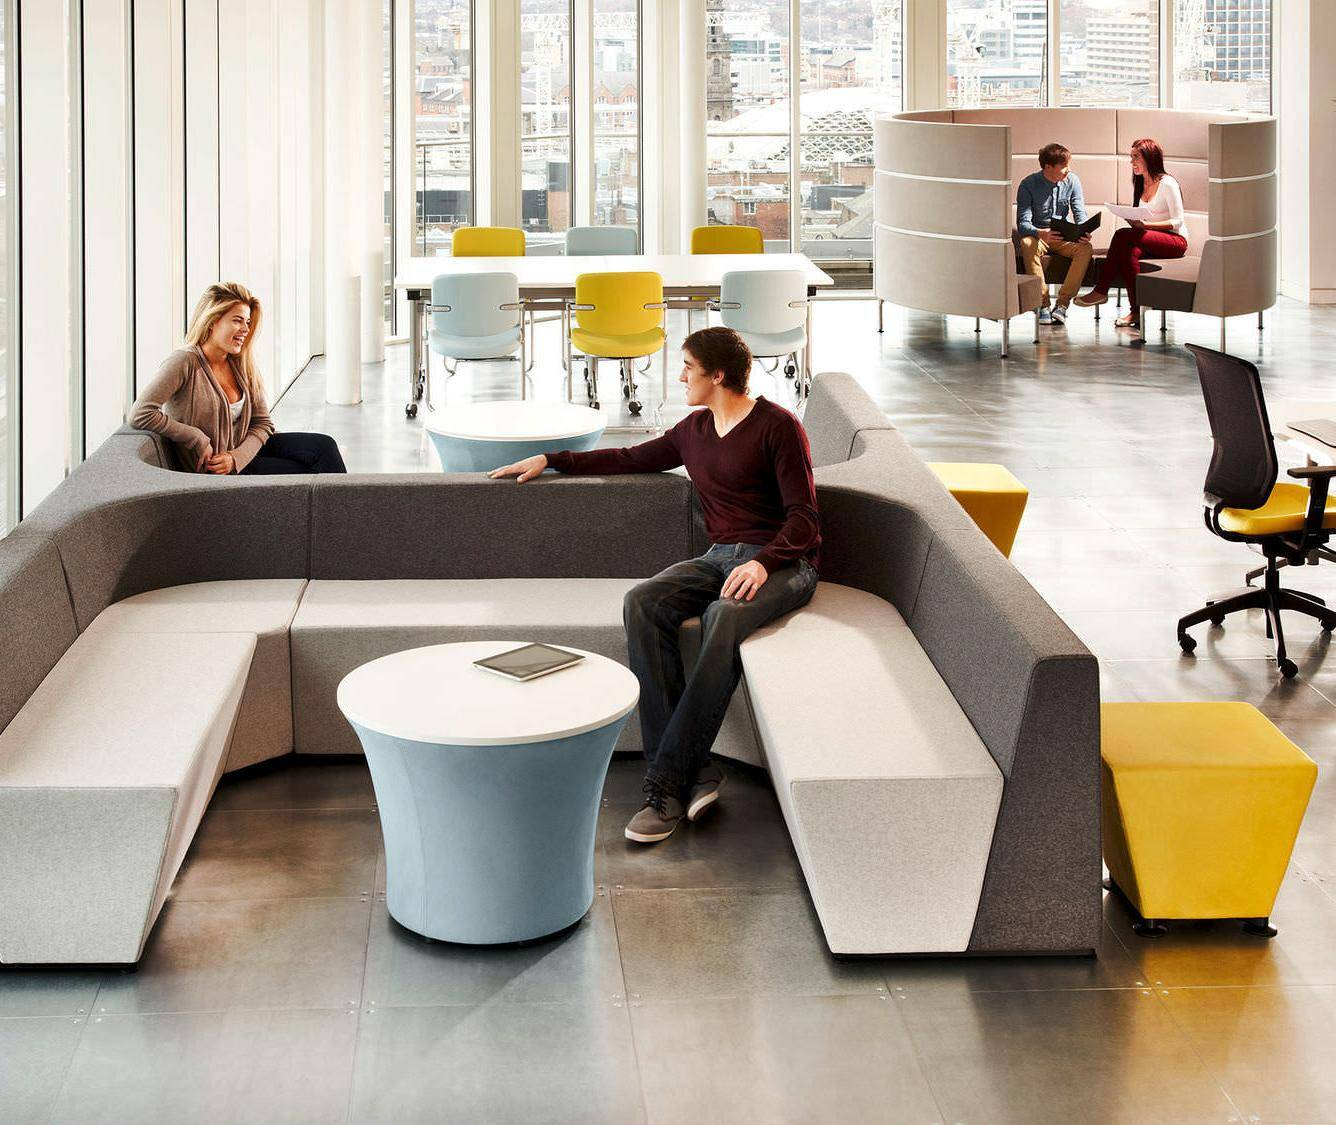 From the archive: Preparing ourselves for the coming era of the boundless office